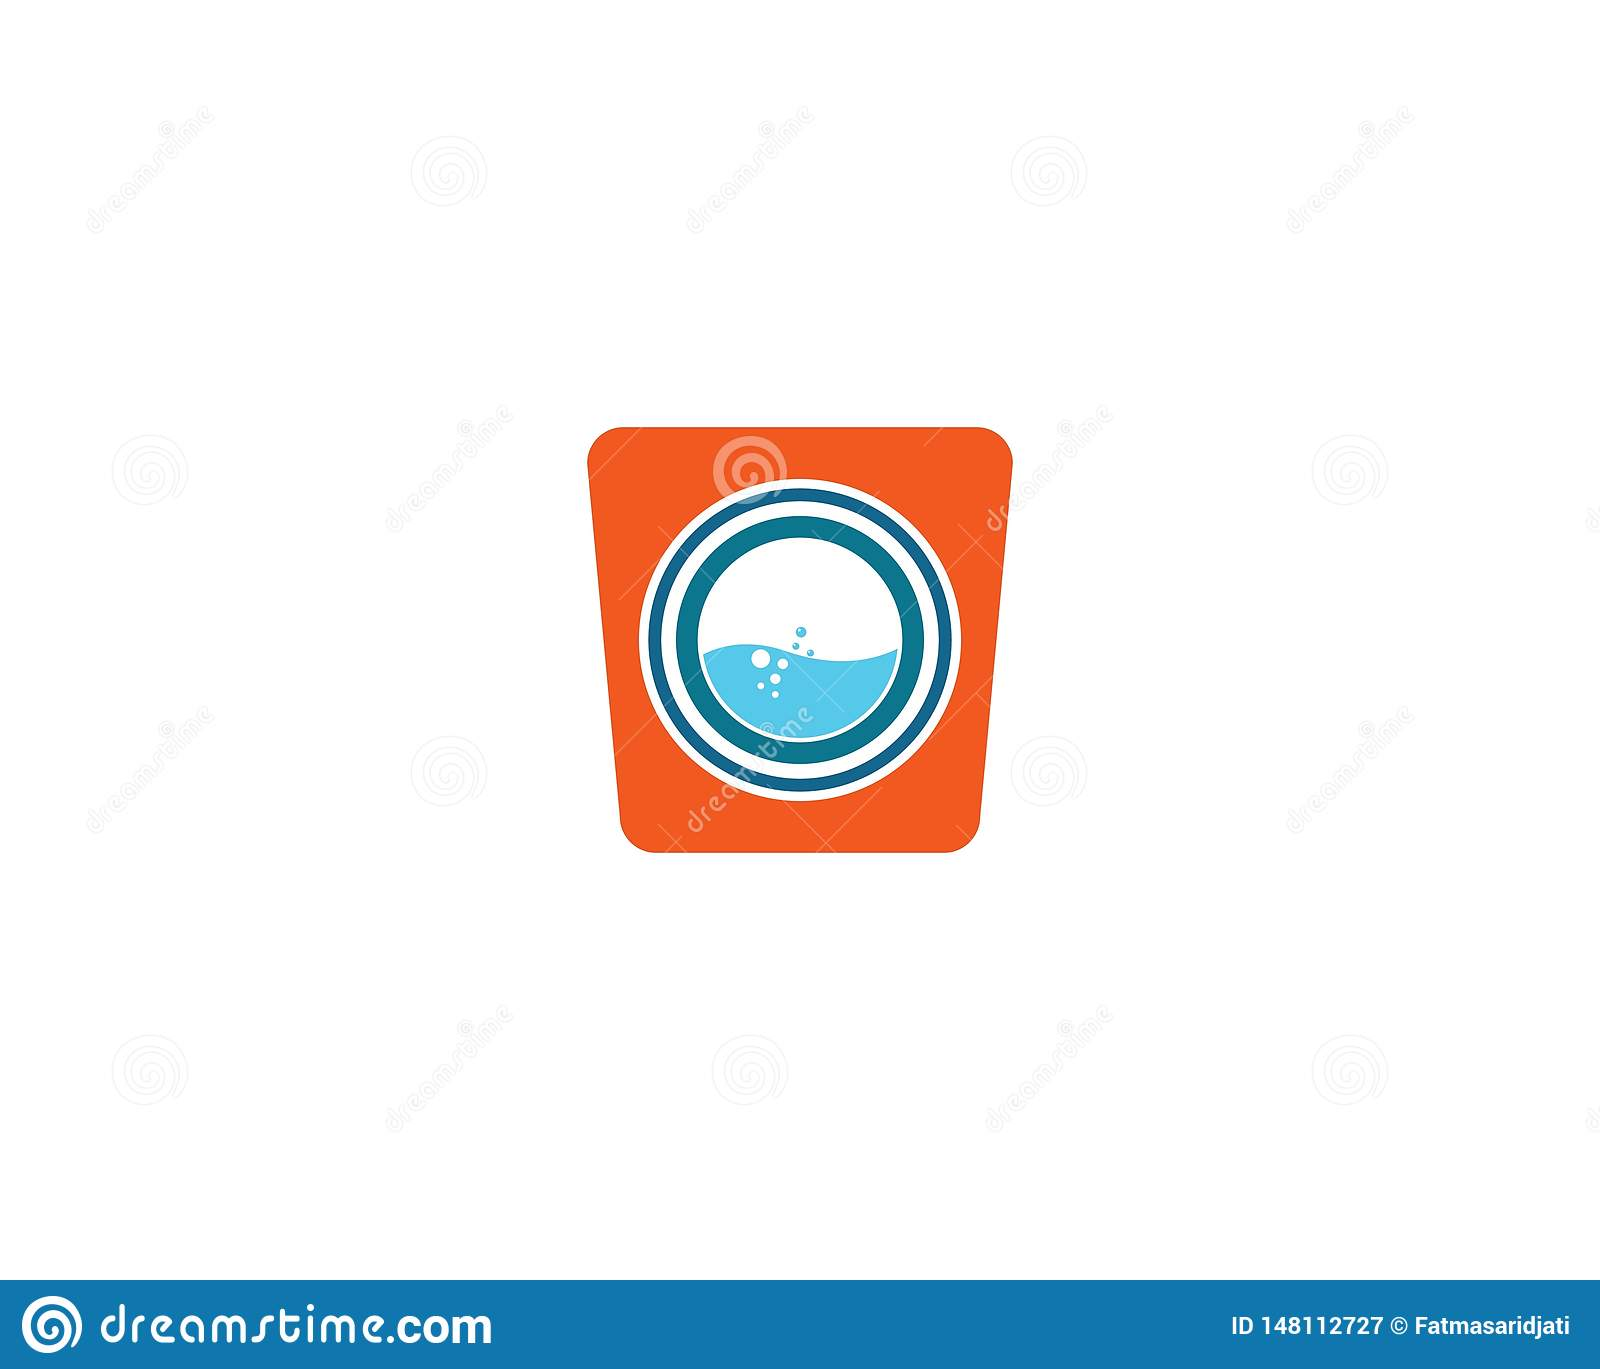 Laundry logo vector icon